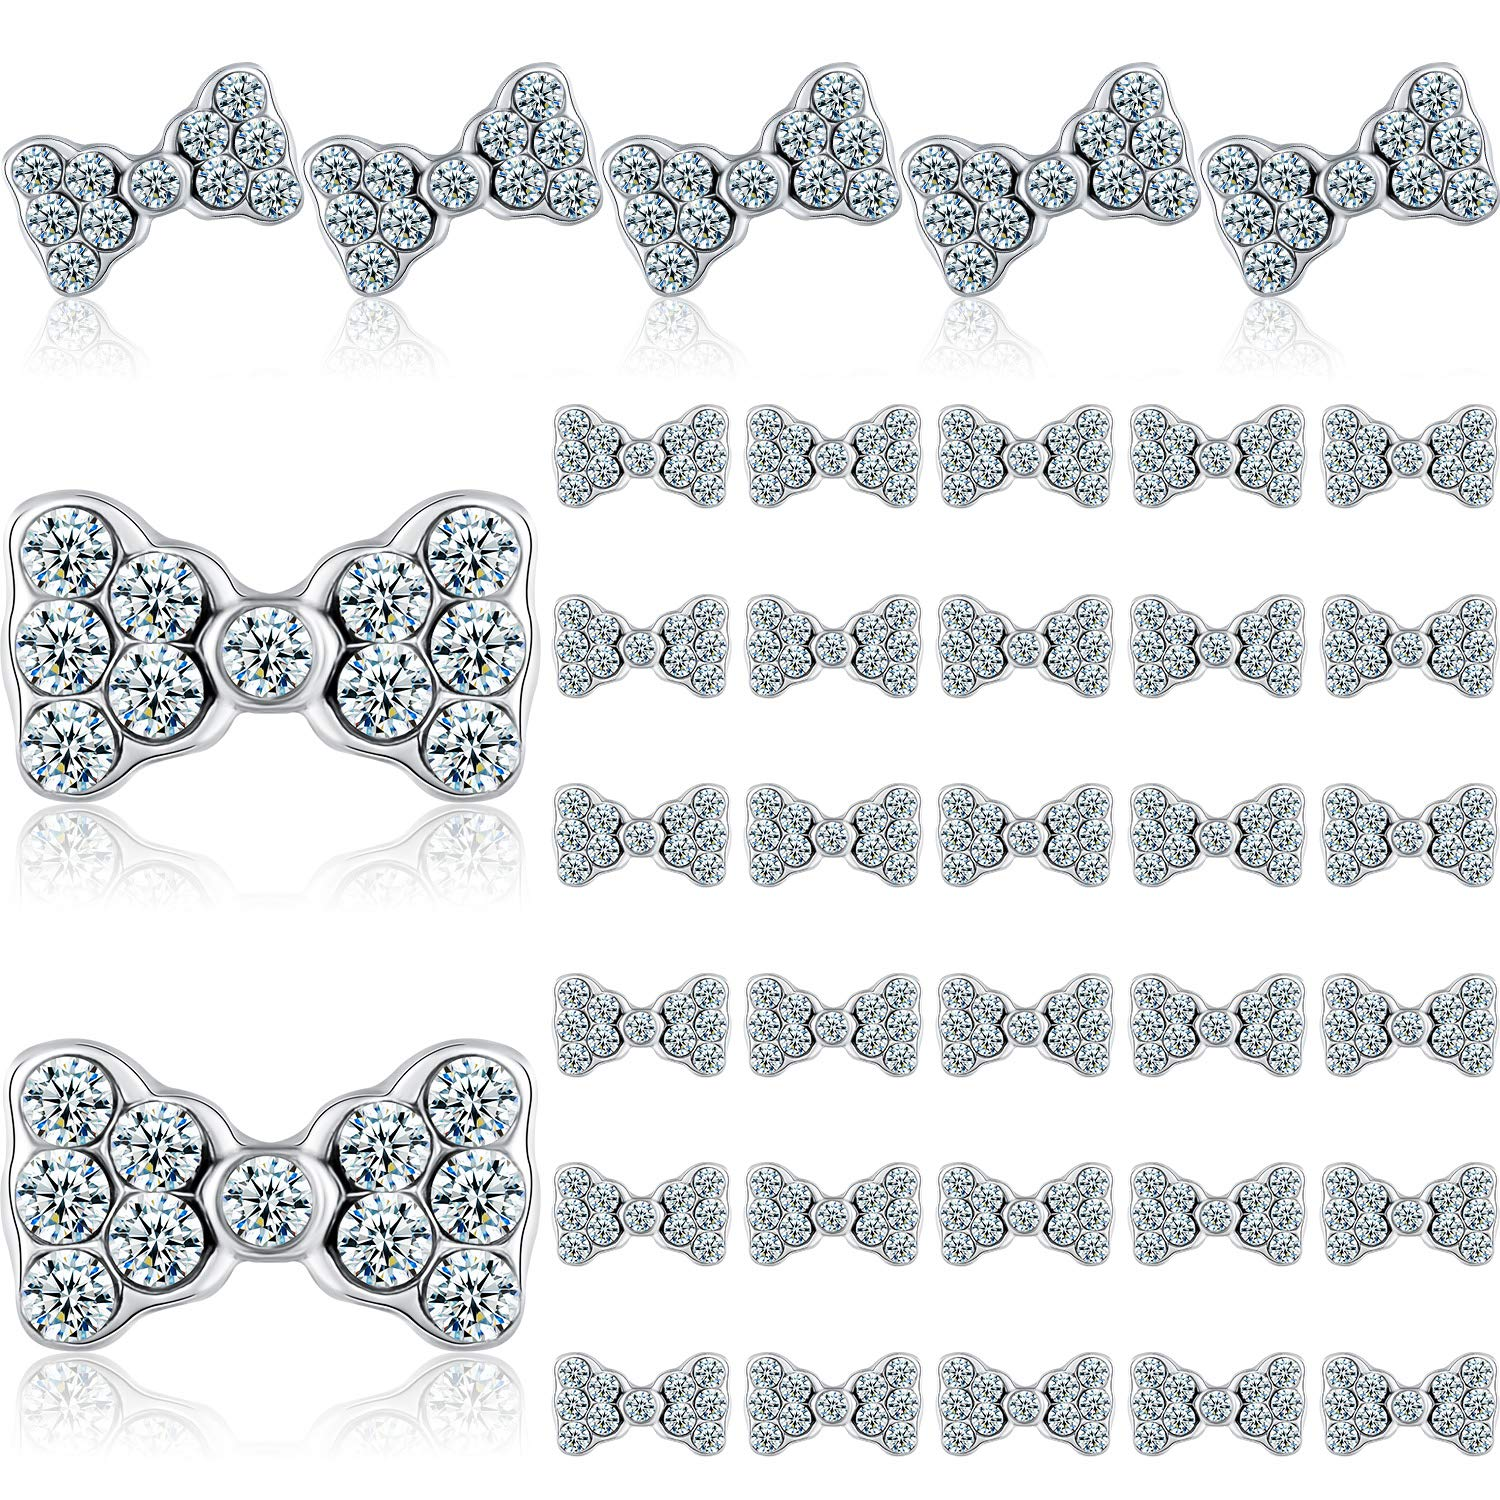 40 Pieces 3D Bow Nail Charms Design Max 79% OFF Rhin Tie Art Slices Minneapolis Mall